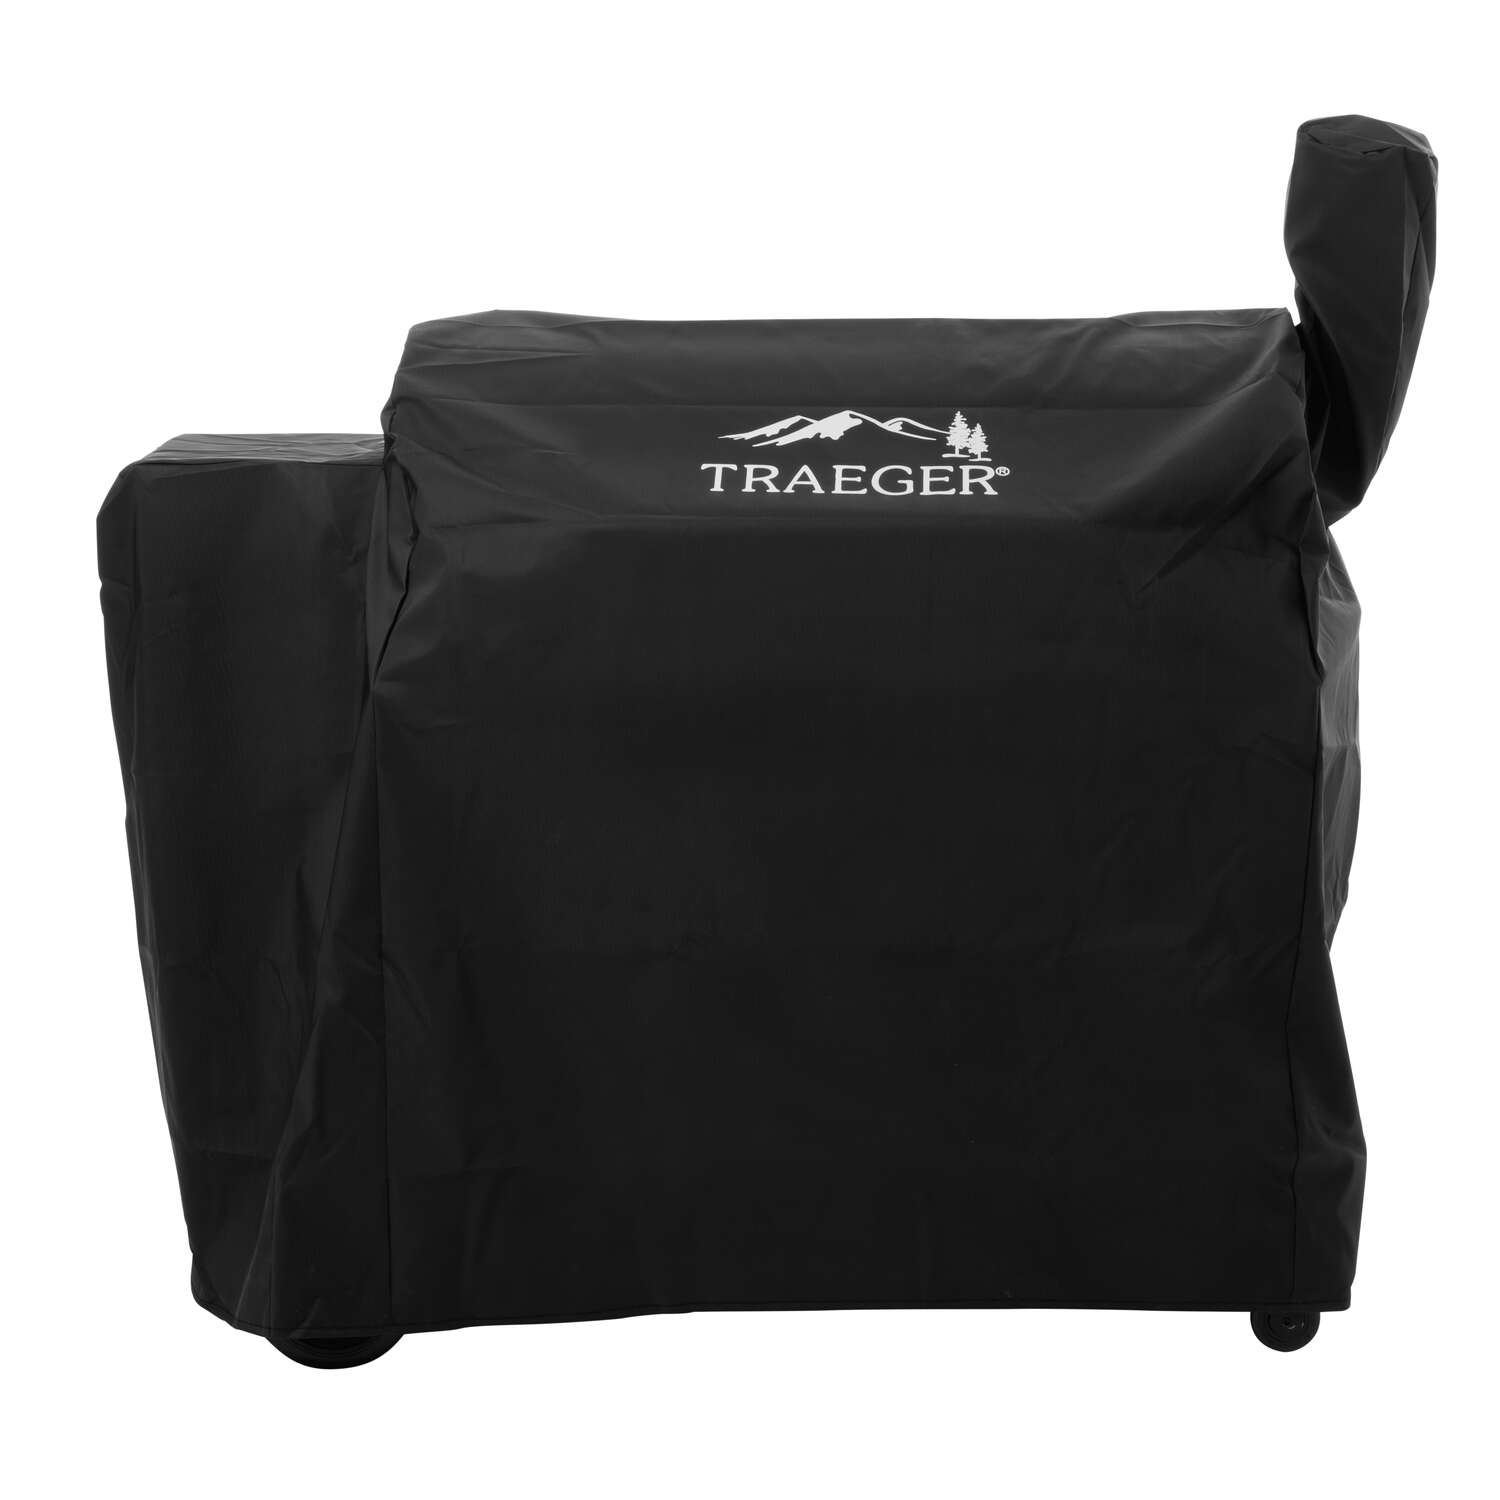 Traeger  Series 34  Black  Grill Cover  For TFB88PUB, TFB88PZB 22 in. W x 39 in. H